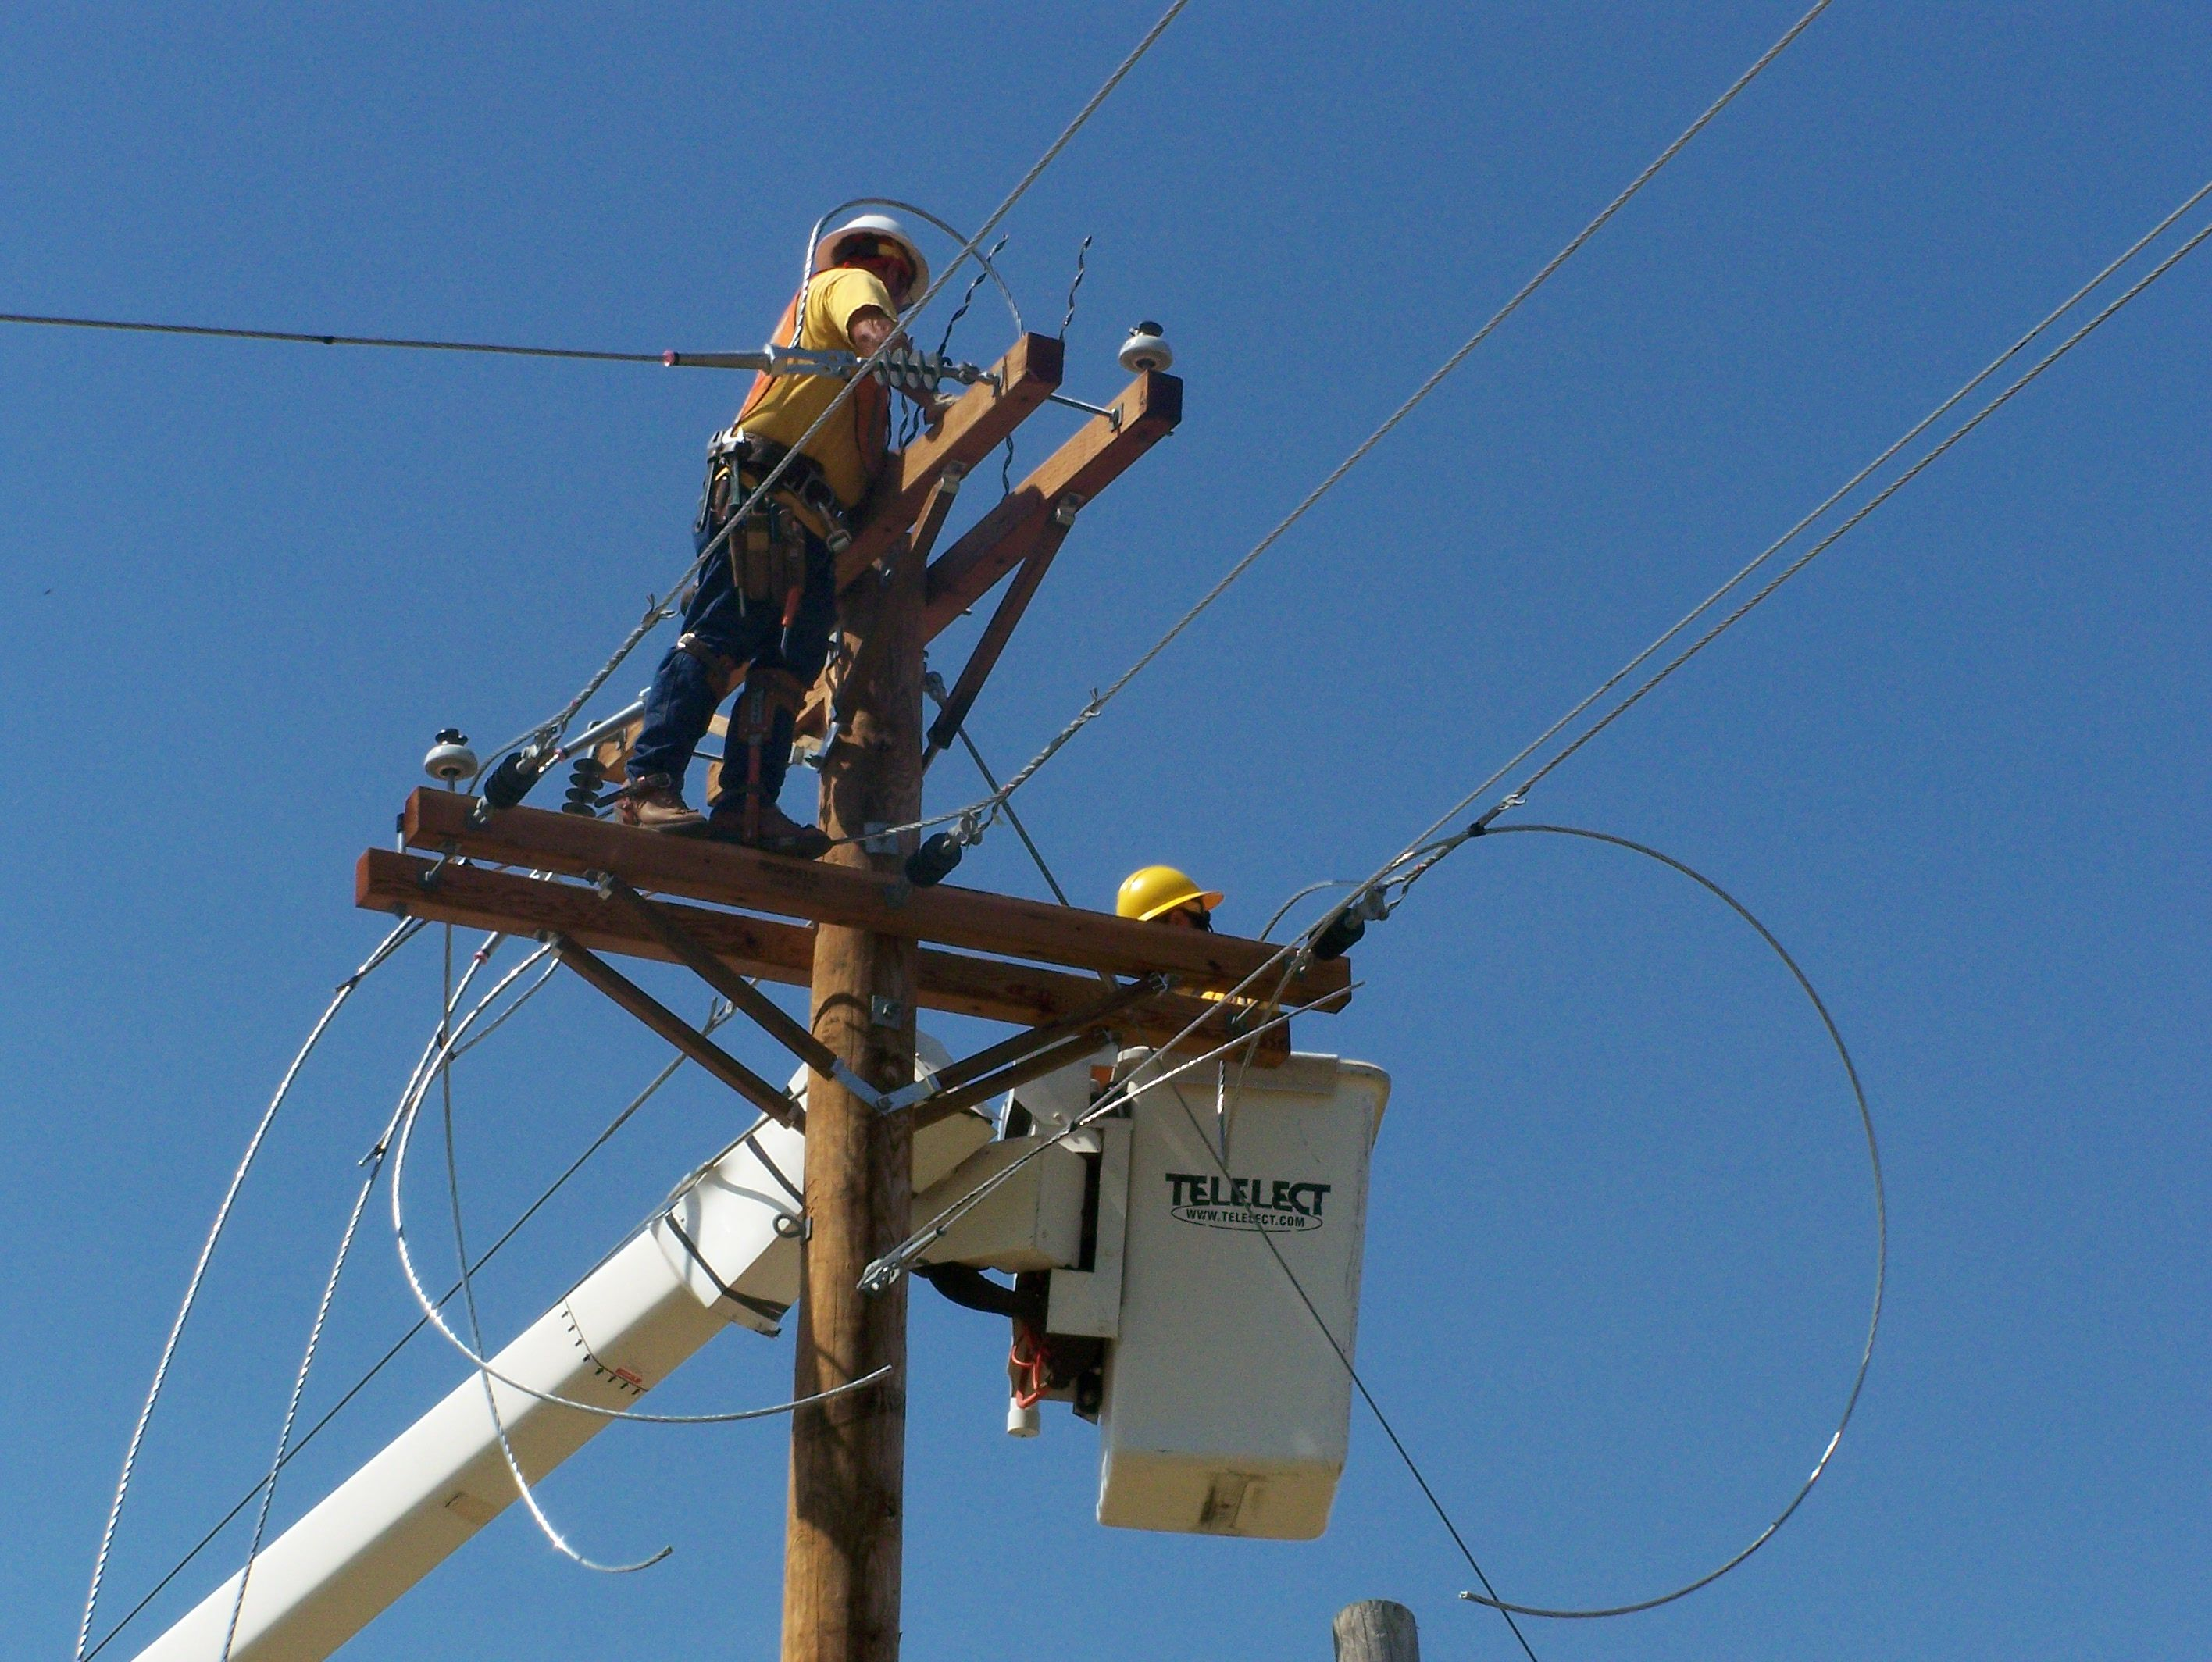 The electric distribution department has twelve employees that construct, operate and maintain over 150 miles of overhead and underground power lines and electric delivering equipment. Description from cityofwellington.net. I searched for this on bing.com/images